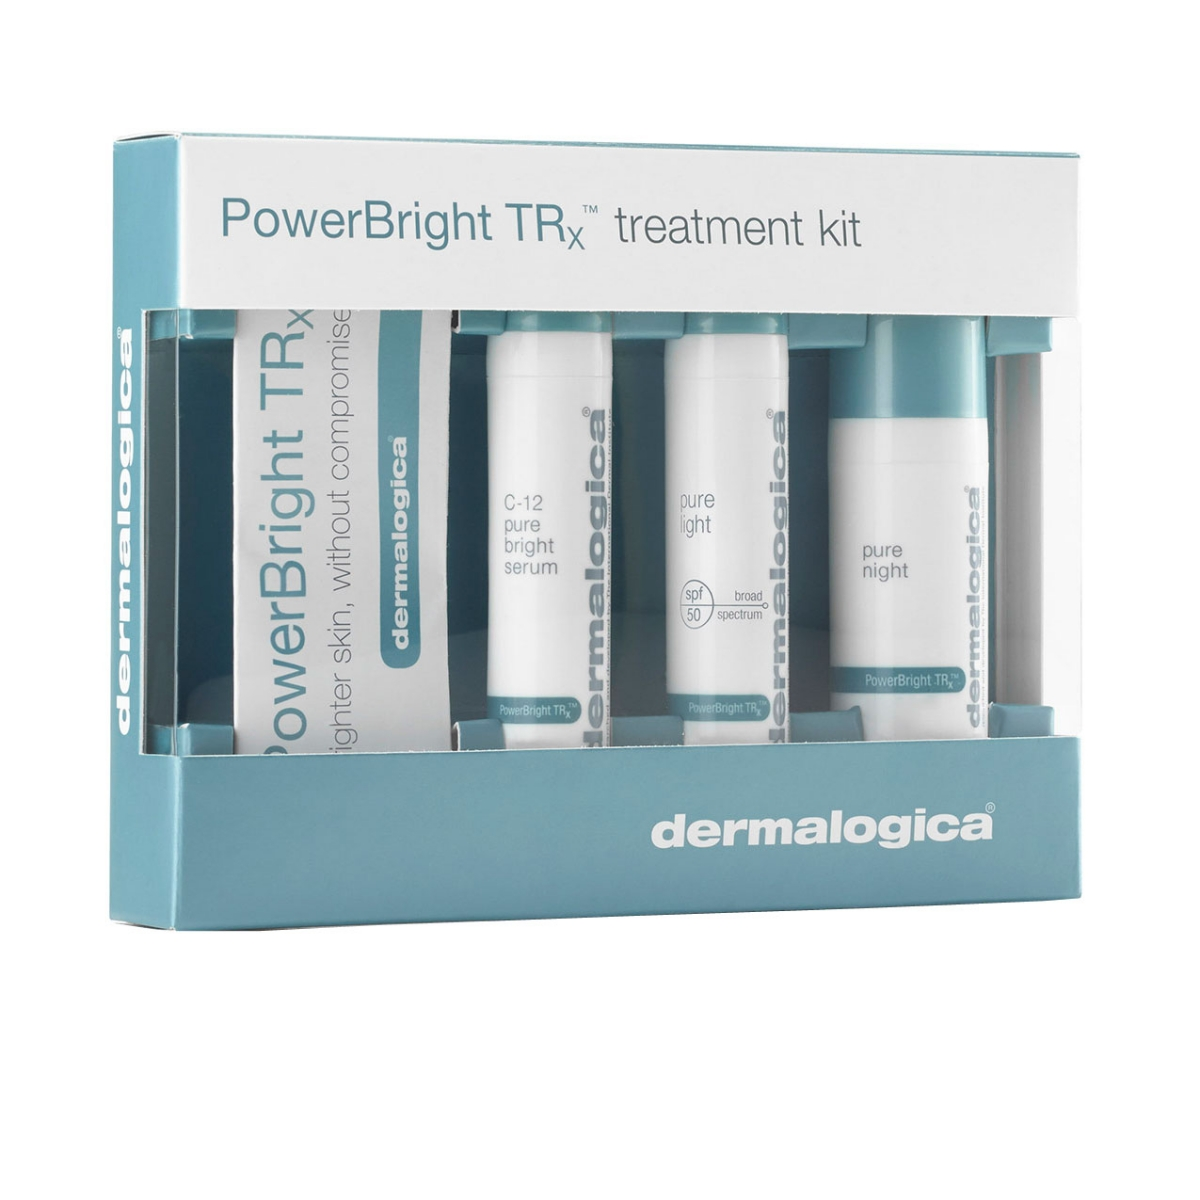 dermalogica : Powerbright Treatment Kit